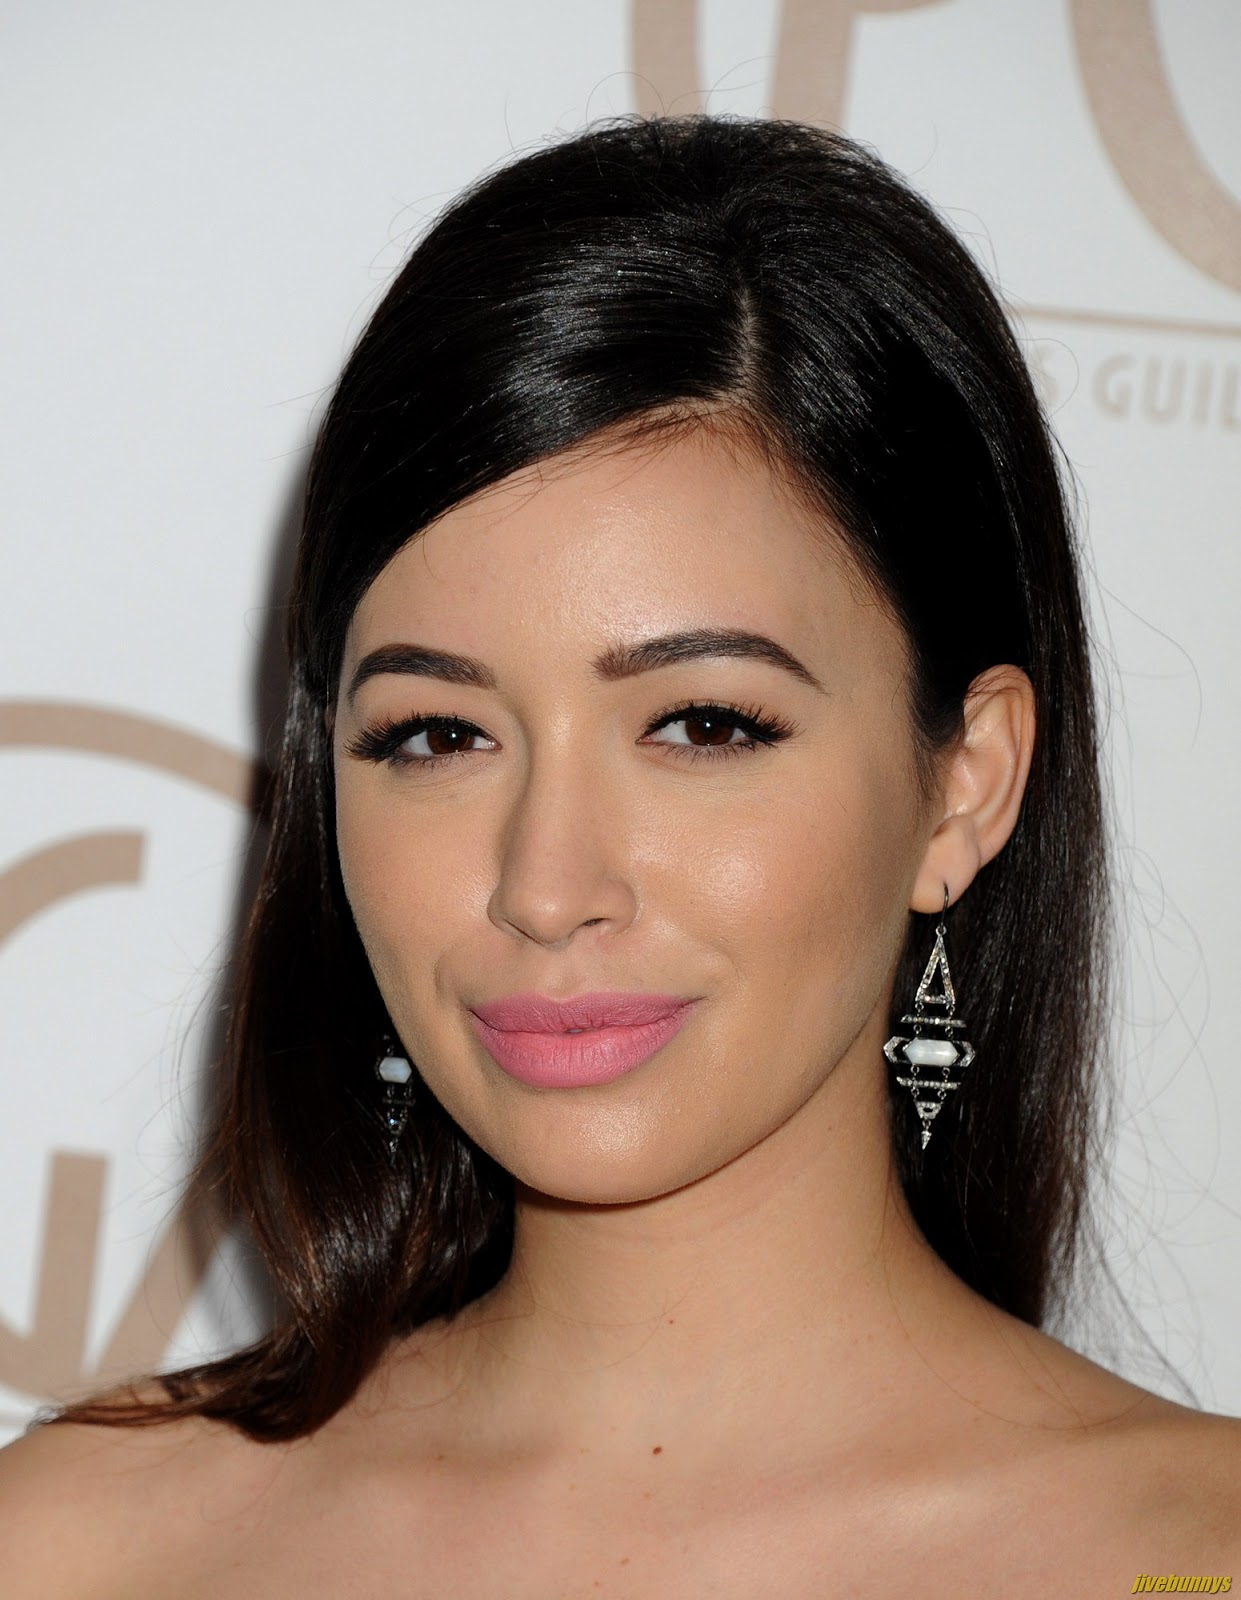 Hacked Christian Serratos nudes (55 photos), Sexy, Hot, Instagram, cleavage 2006